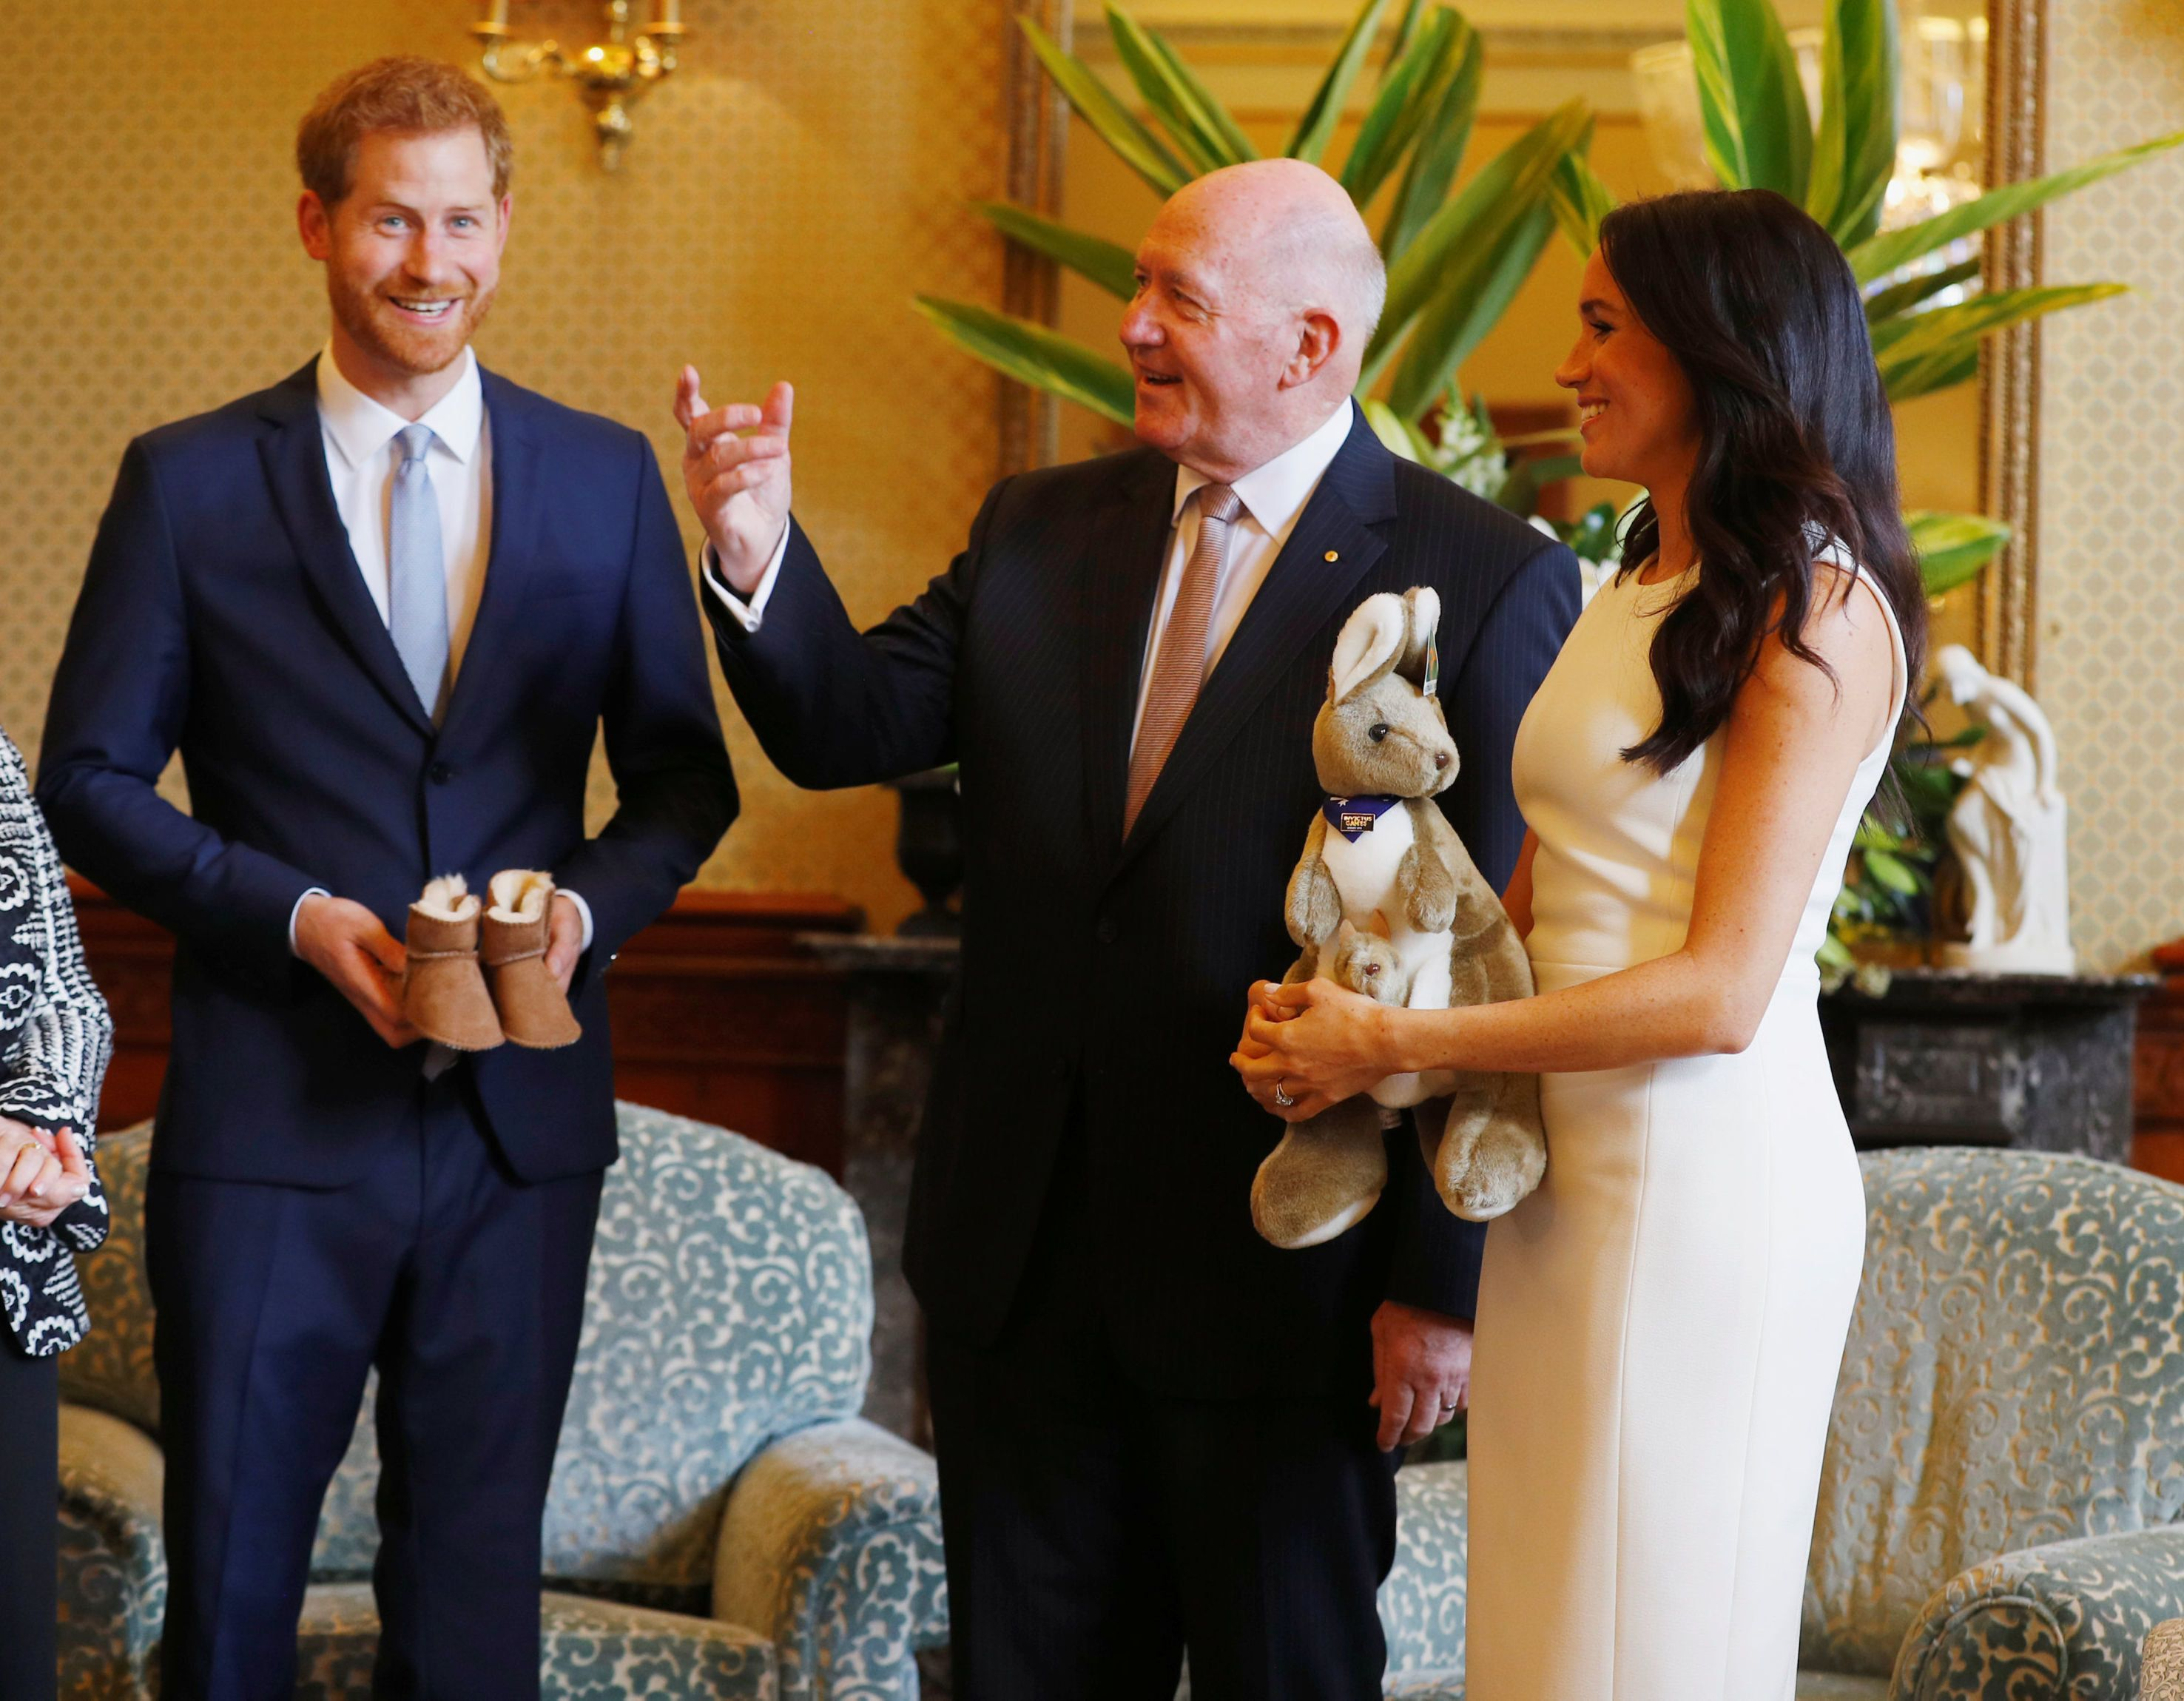 One year on - Harry and Meghan back at Invictus Games